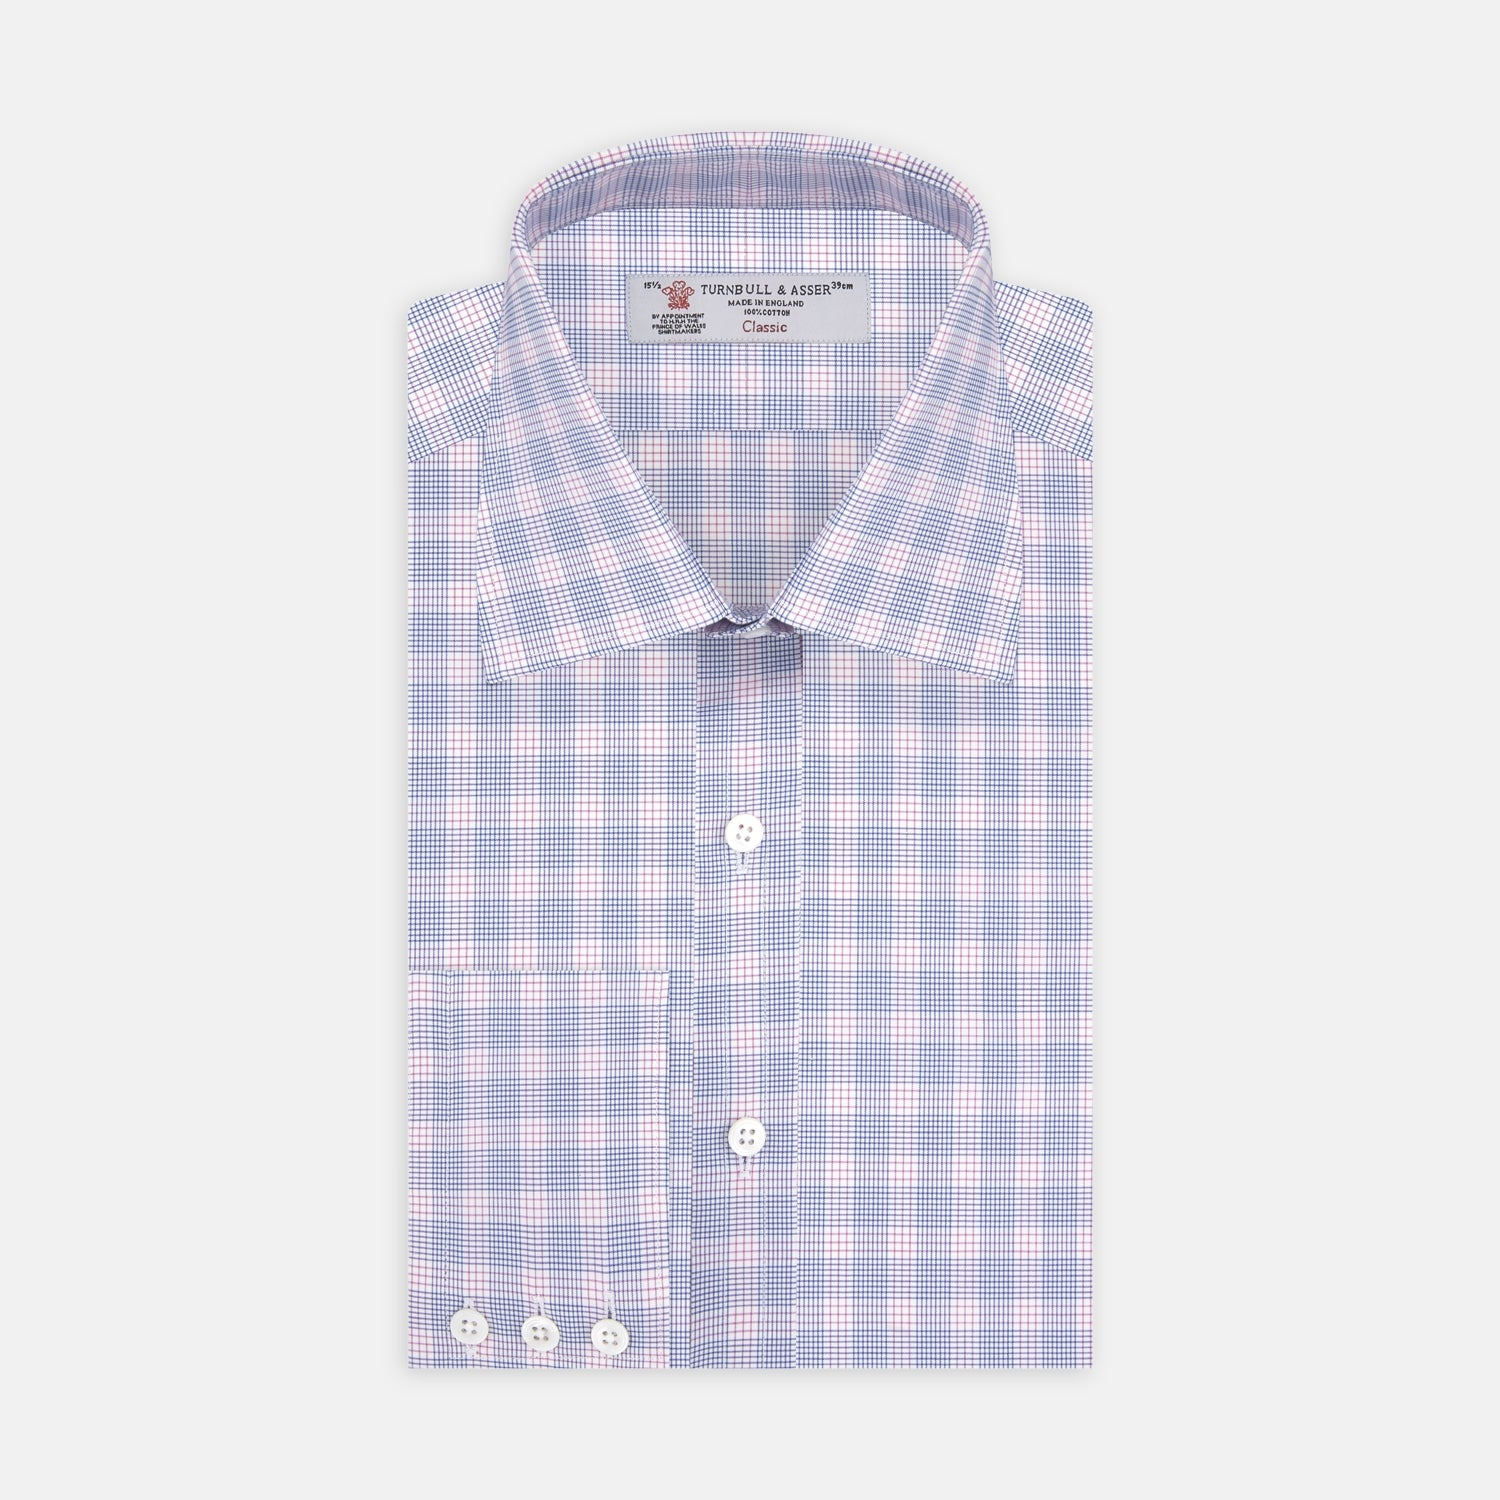 Blue and Pink CrossCheck Shirt with T&A Collar and 3-Button Cuffs